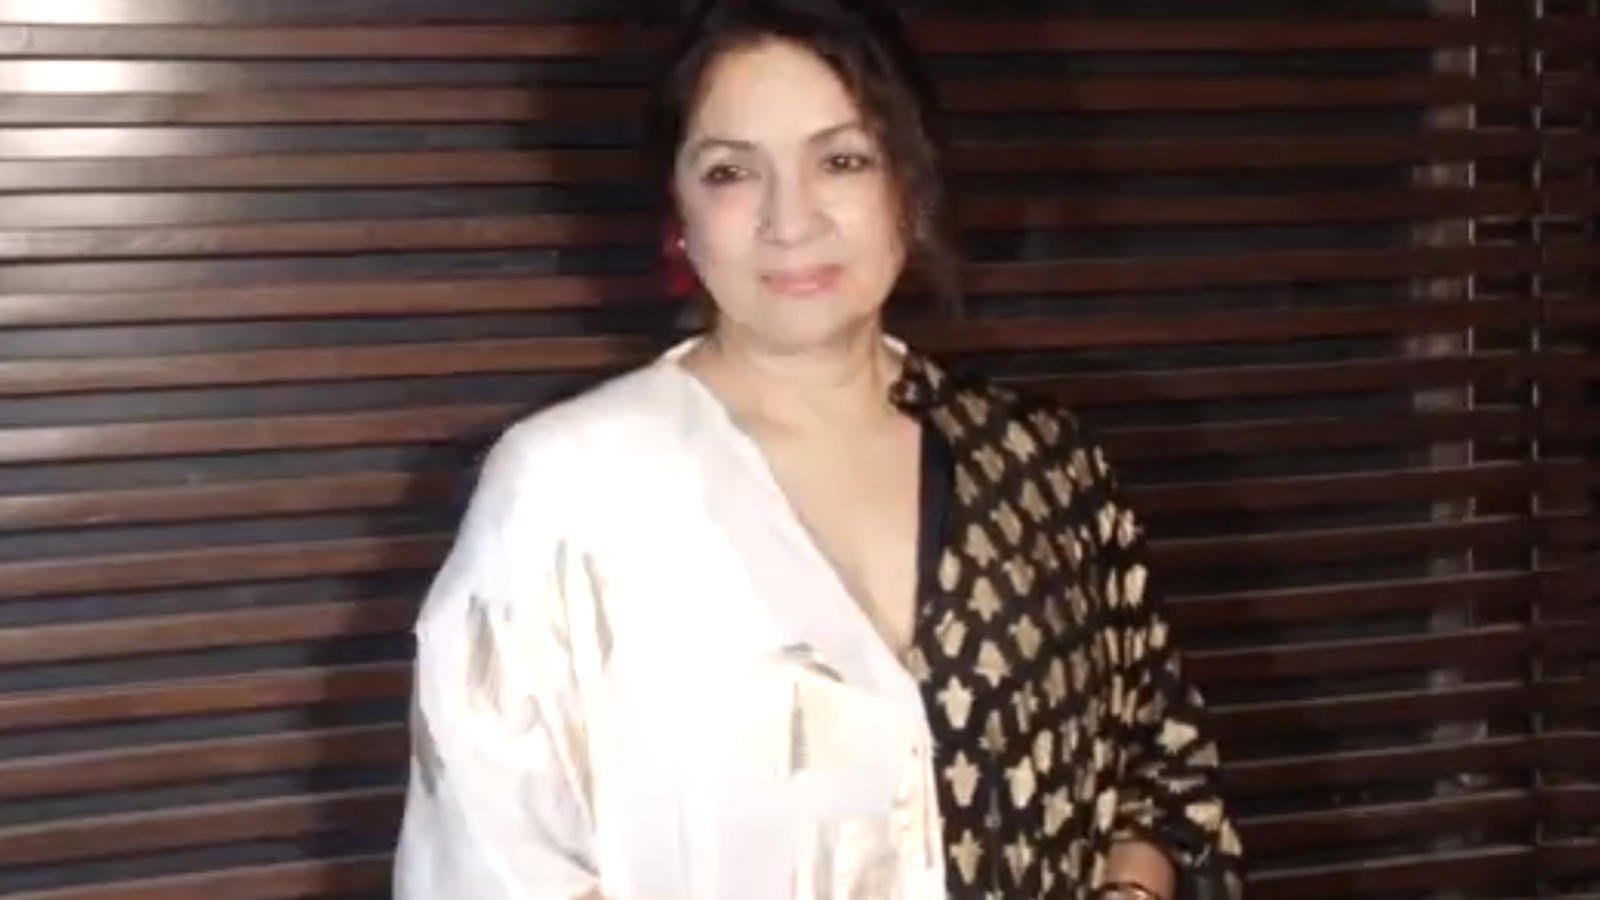 Old age actresses will be offered substantial role now: Neena Gupta